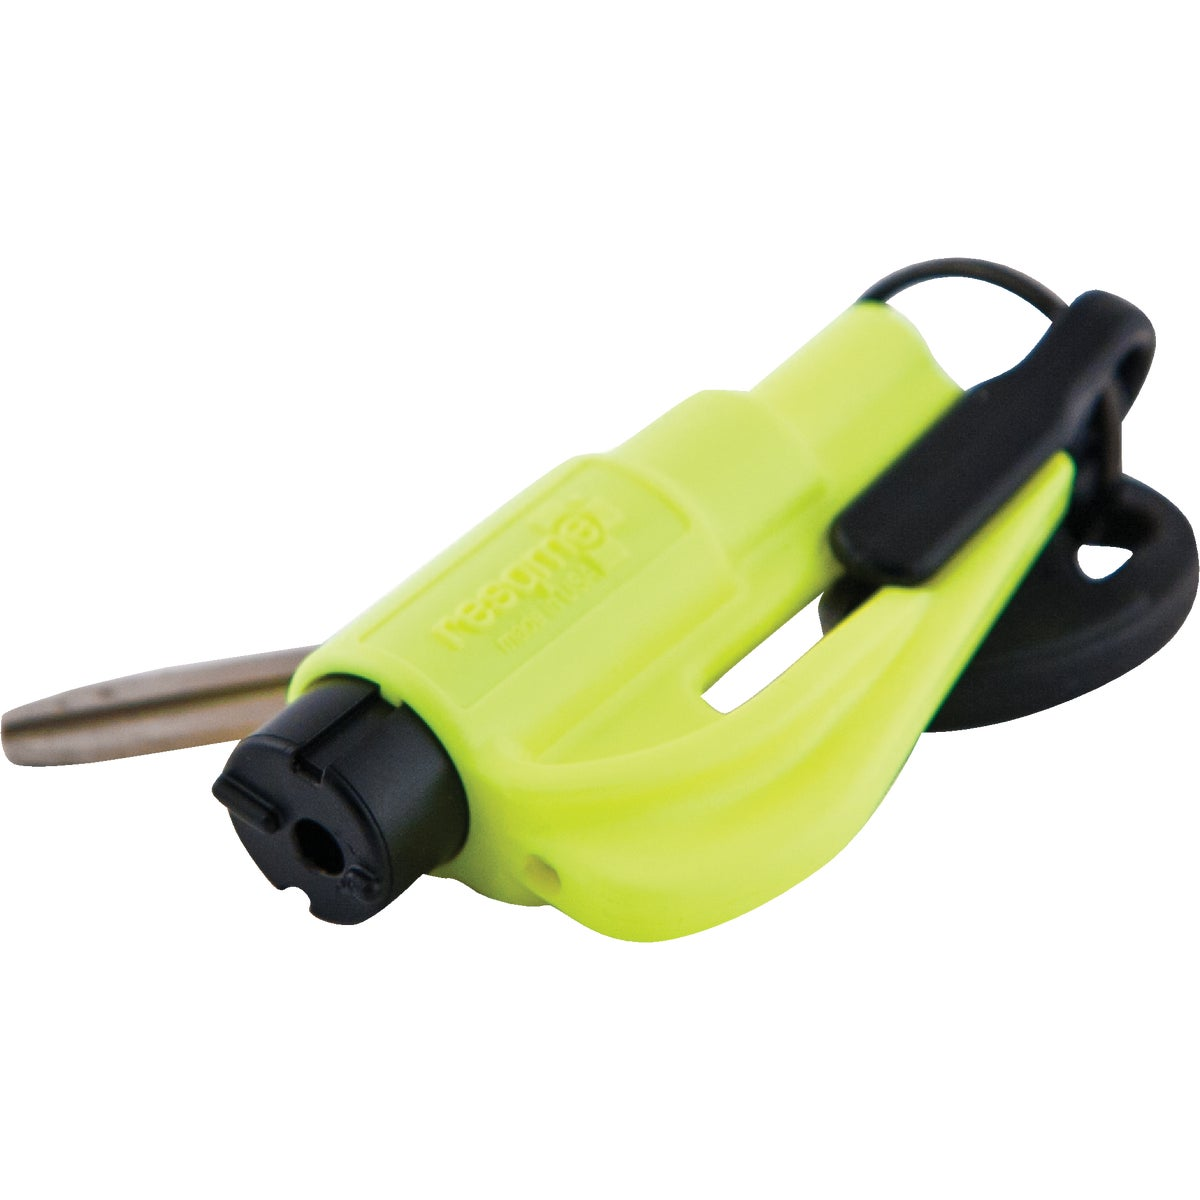 RESQME AUTO ESCAPE TOOL - RQM-EU2 by Innovation Dist